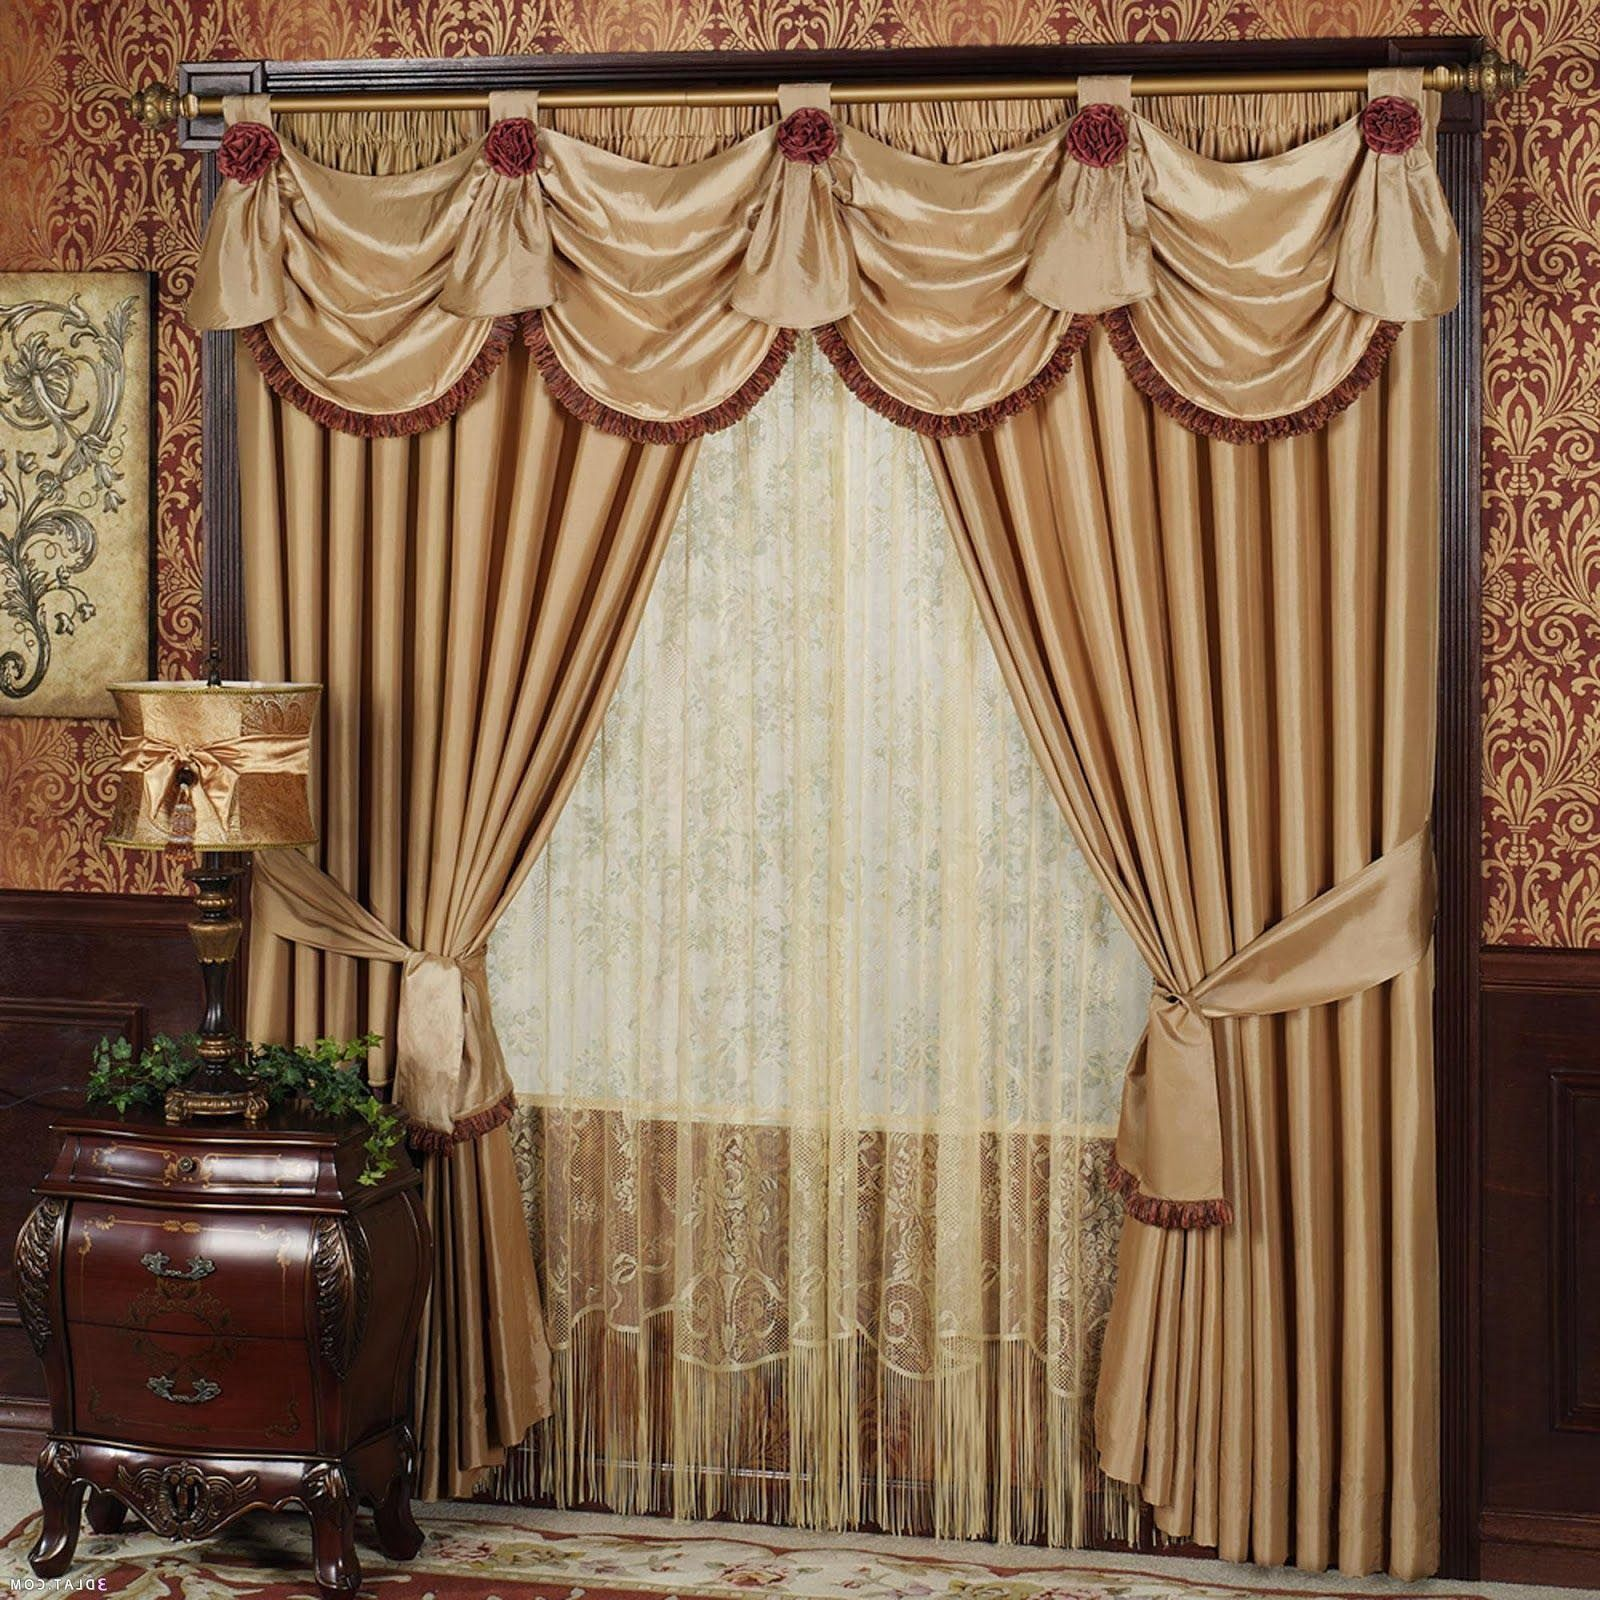 blinds on curtain pin window wilmington by coatesville west of custom and curtains budget drapes